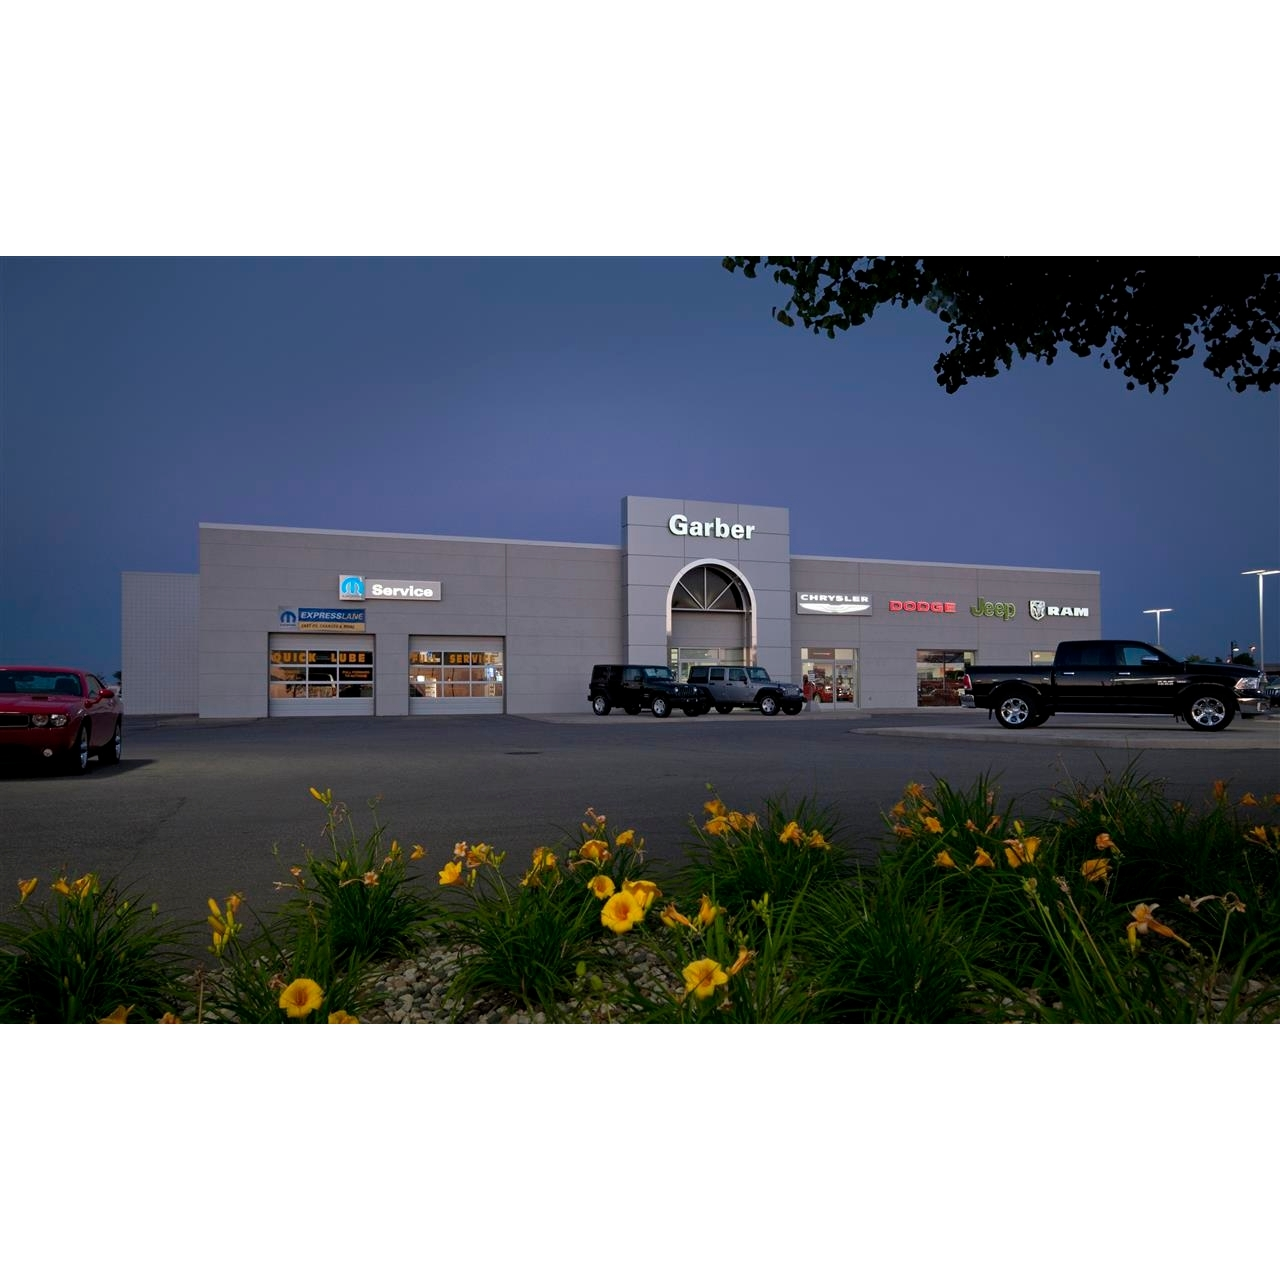 Garber Chrysler Dodge Jeep Ram, Saginaw Michigan (MI